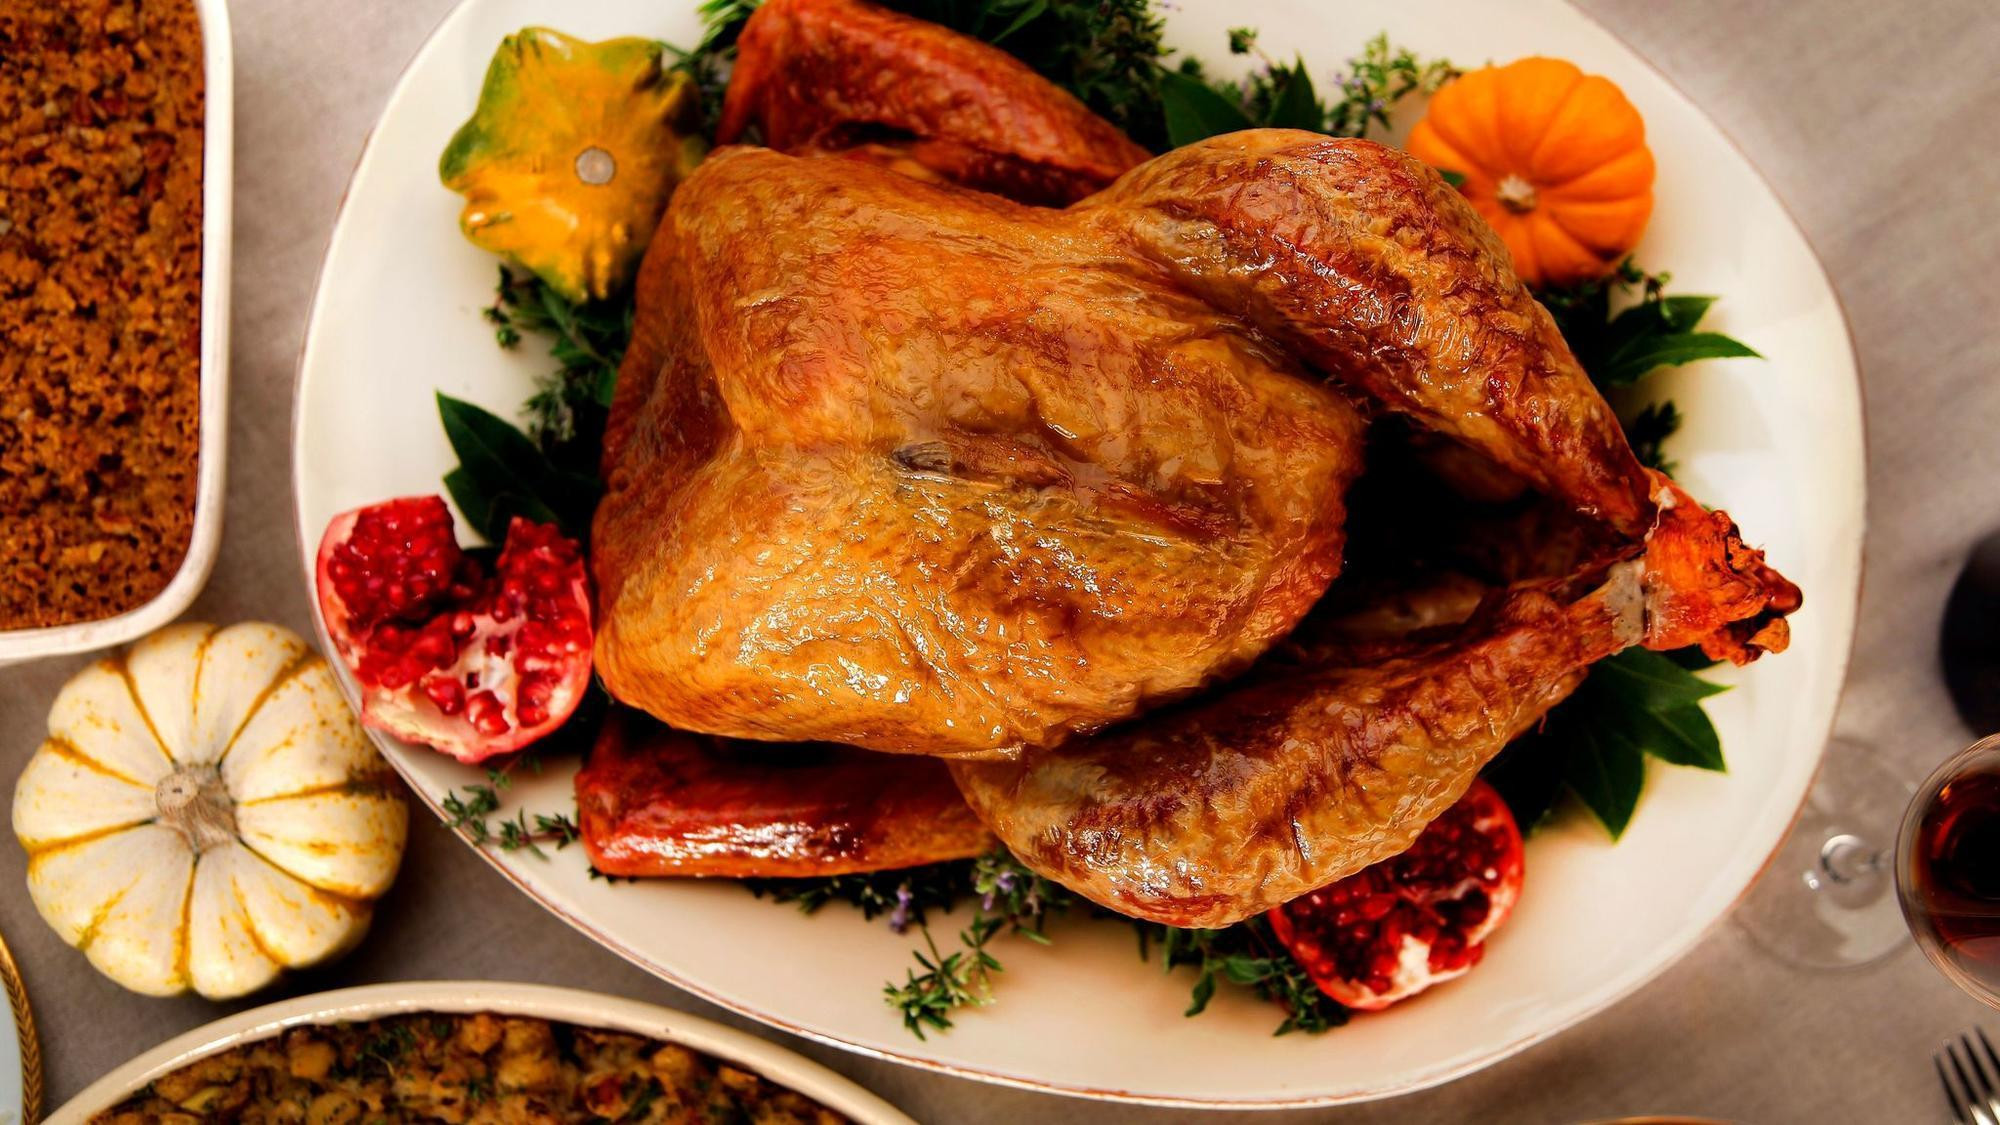 Prepare Turkey For Thanksgiving  Turkey 101 How to cook a Thanksgiving turkey LA Times